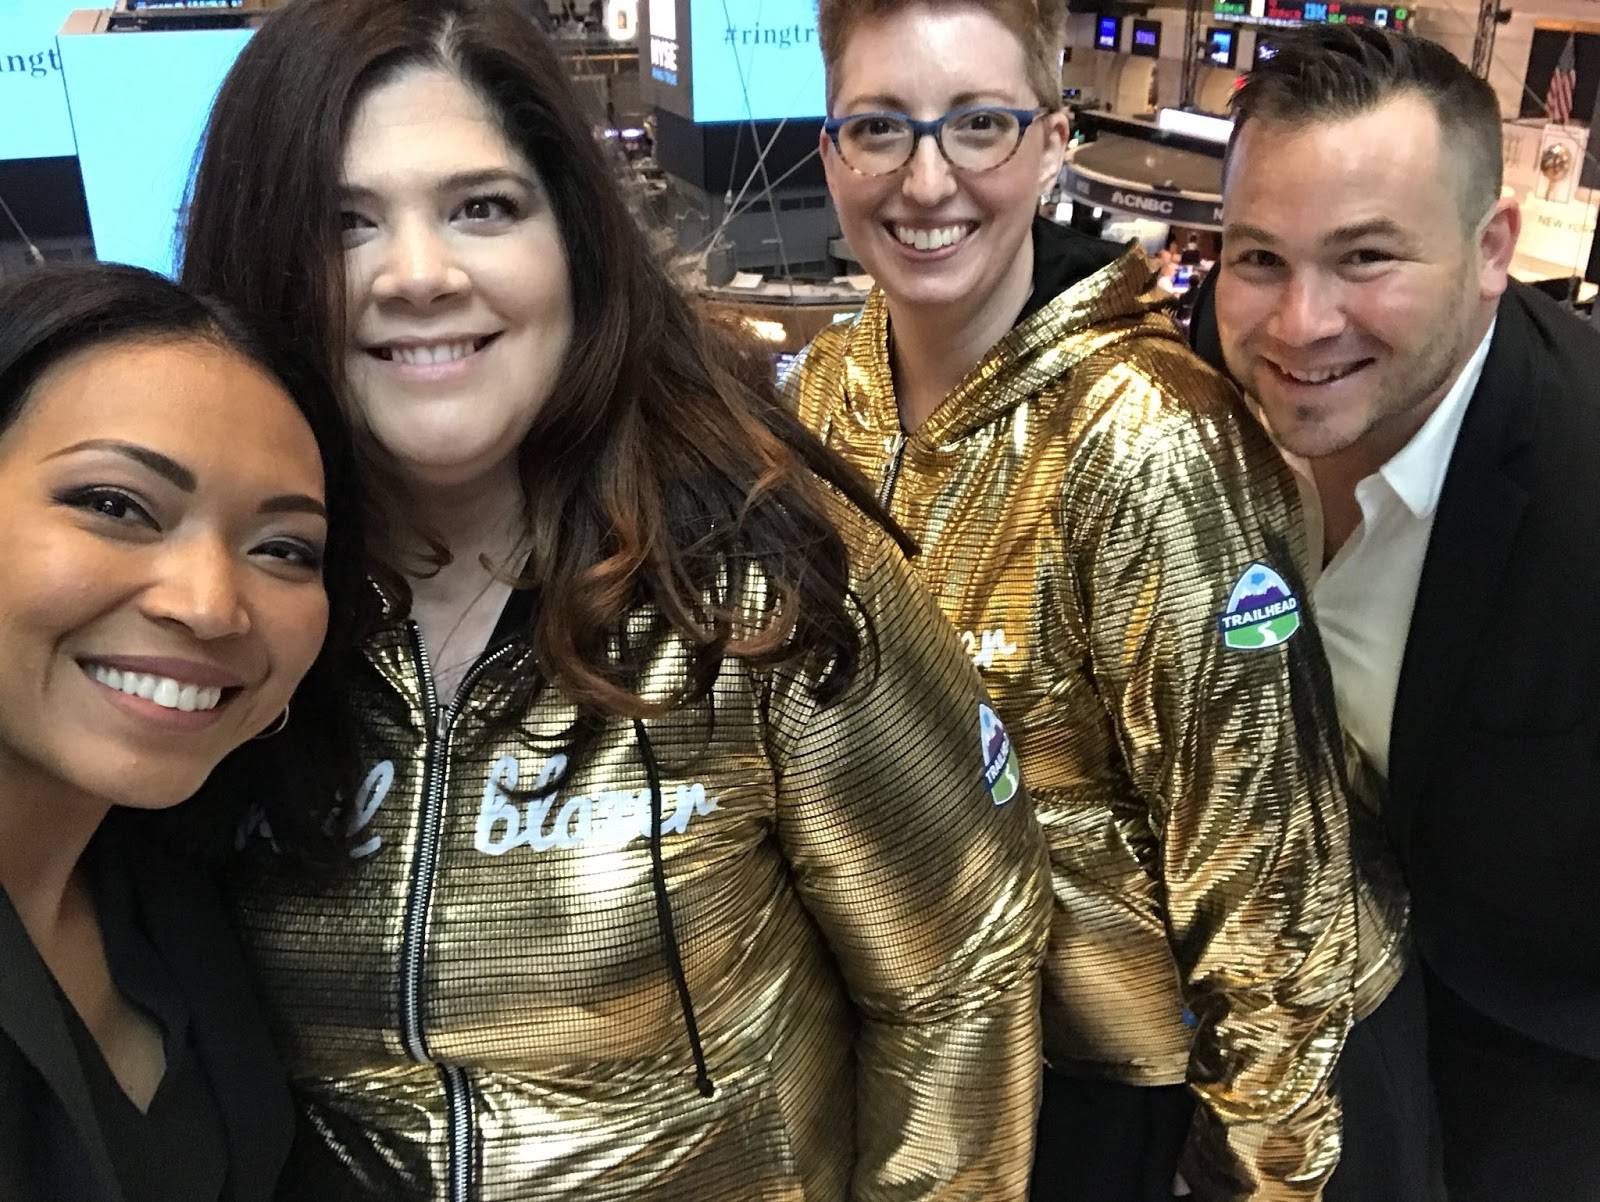 Tigh Loughhead at the New York Stock Exchange with Cheryl Feldman, Carrie Mantione and Sandi Zellner